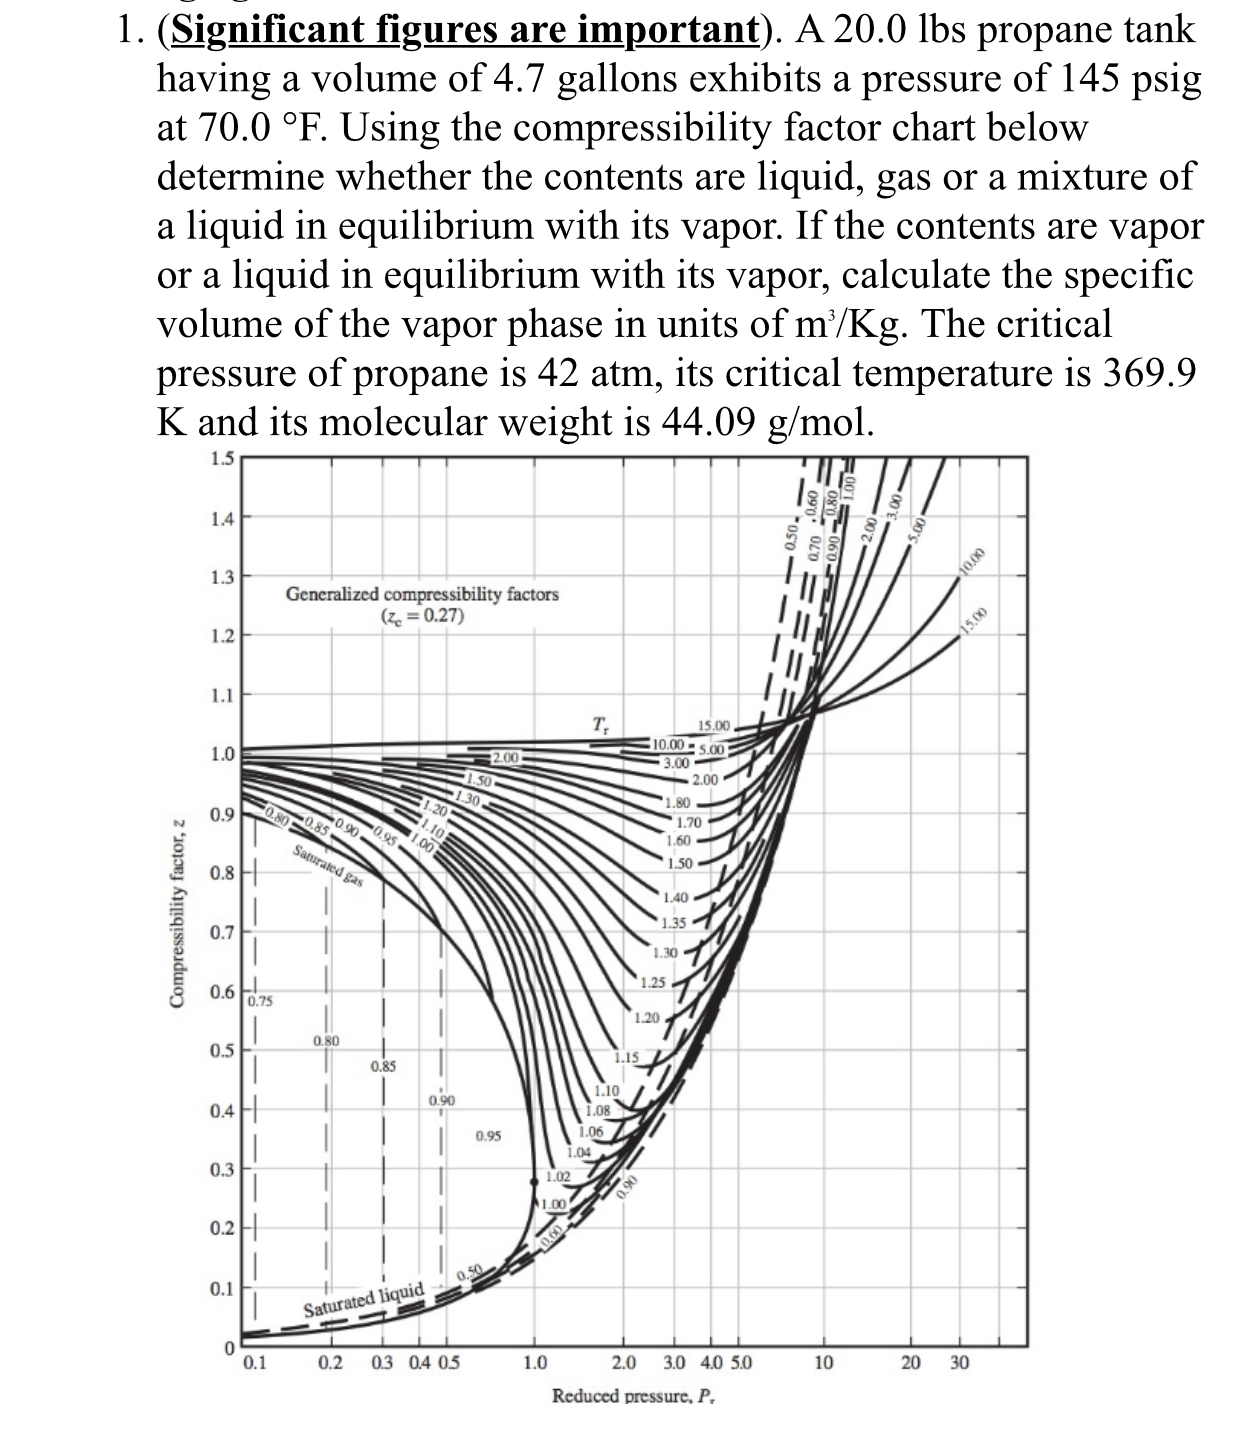 1. (Significant figures are having a volume of 4.7 gallons exhibits a pressure of 145 psig at 70.0 °F. Using the compressibility factor chart below determine whether the contents are important). A 20.0 lbs propane tank liquid, gas or a mixture of liquid in equilibrium with its vapor. If the contents are vapor liquid in equilibrium with its vapor, calculate the specific volume of the vapor phase in units of m'/Kg. The critical pressure of propane is 42 atm, its critical temperature is 369.9 K and its molecular weight is 44.09 g/mol а or a 1.5 1.4 1.3 з000 Generalized compressibility factors (z 0.27) 15.00 12 1.1 т, 15.00 10.00-5.00 3.00 1.0 2.00 50 2.00 1.30 20 .80 O.80 85 0.9 0 gn0,95. 1.70 1.Io 00 60 Saturated gas 1.50 0.8 1.40 1.35 0.7 1.30 .25 0.6 T0.75 1.20 0.80 0.5 1.15 0.85 1.10 1.08 0.90 0.4 1.06 0.95 1.04 0.3 1.02 90 1.00 0.2 0 50 0.1 Saturated liquid 0 0.1 3.0 4.0 5.0 30 0.2 0.3 04 05 1.0 2.0 10 20 Reduced pressure, P Compressibility factor, z S0.90